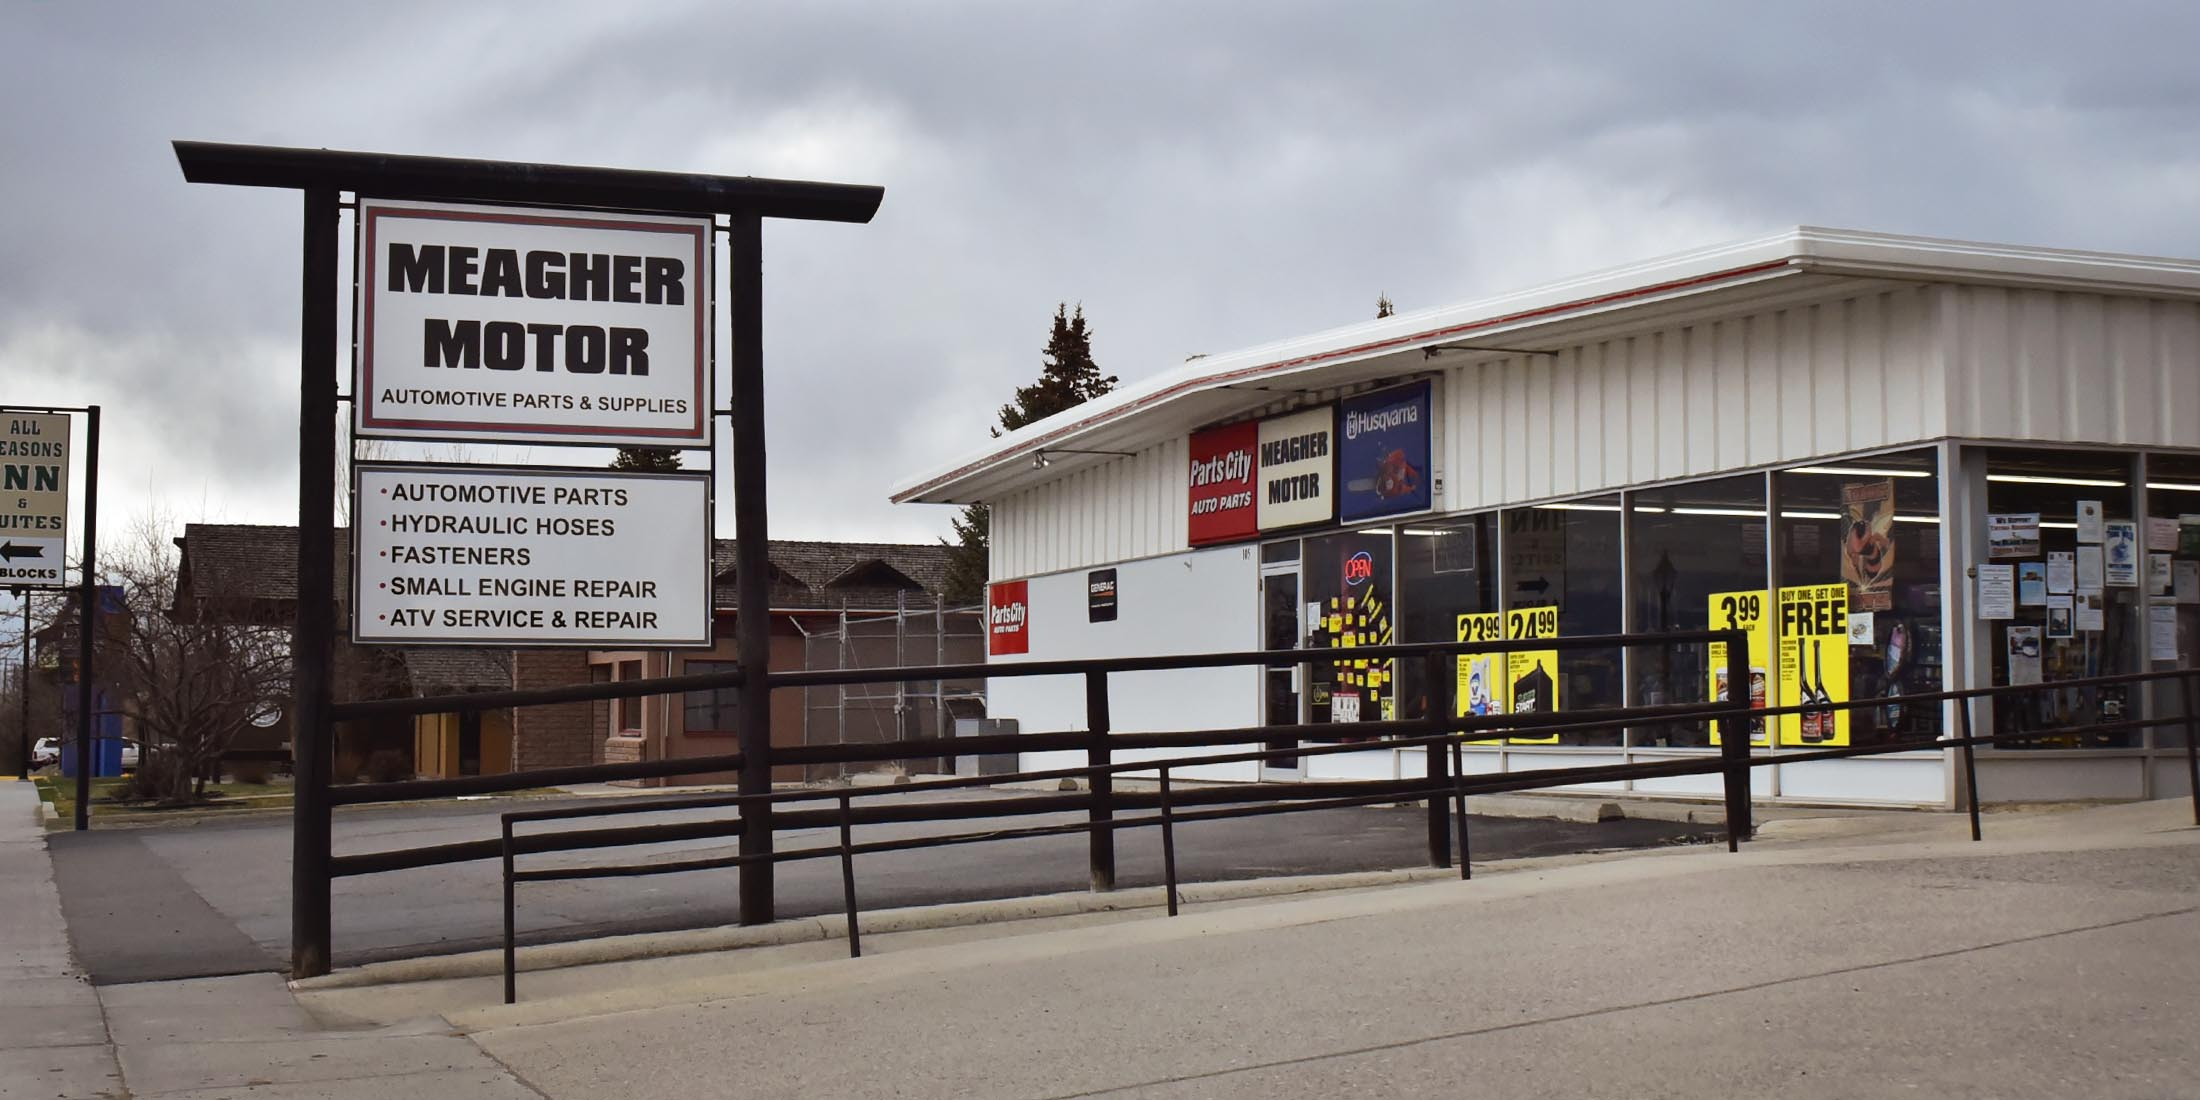 Information about the auto parts store, Meagher Motor, located in White Sulphur Springs, Montana - Meagher County.